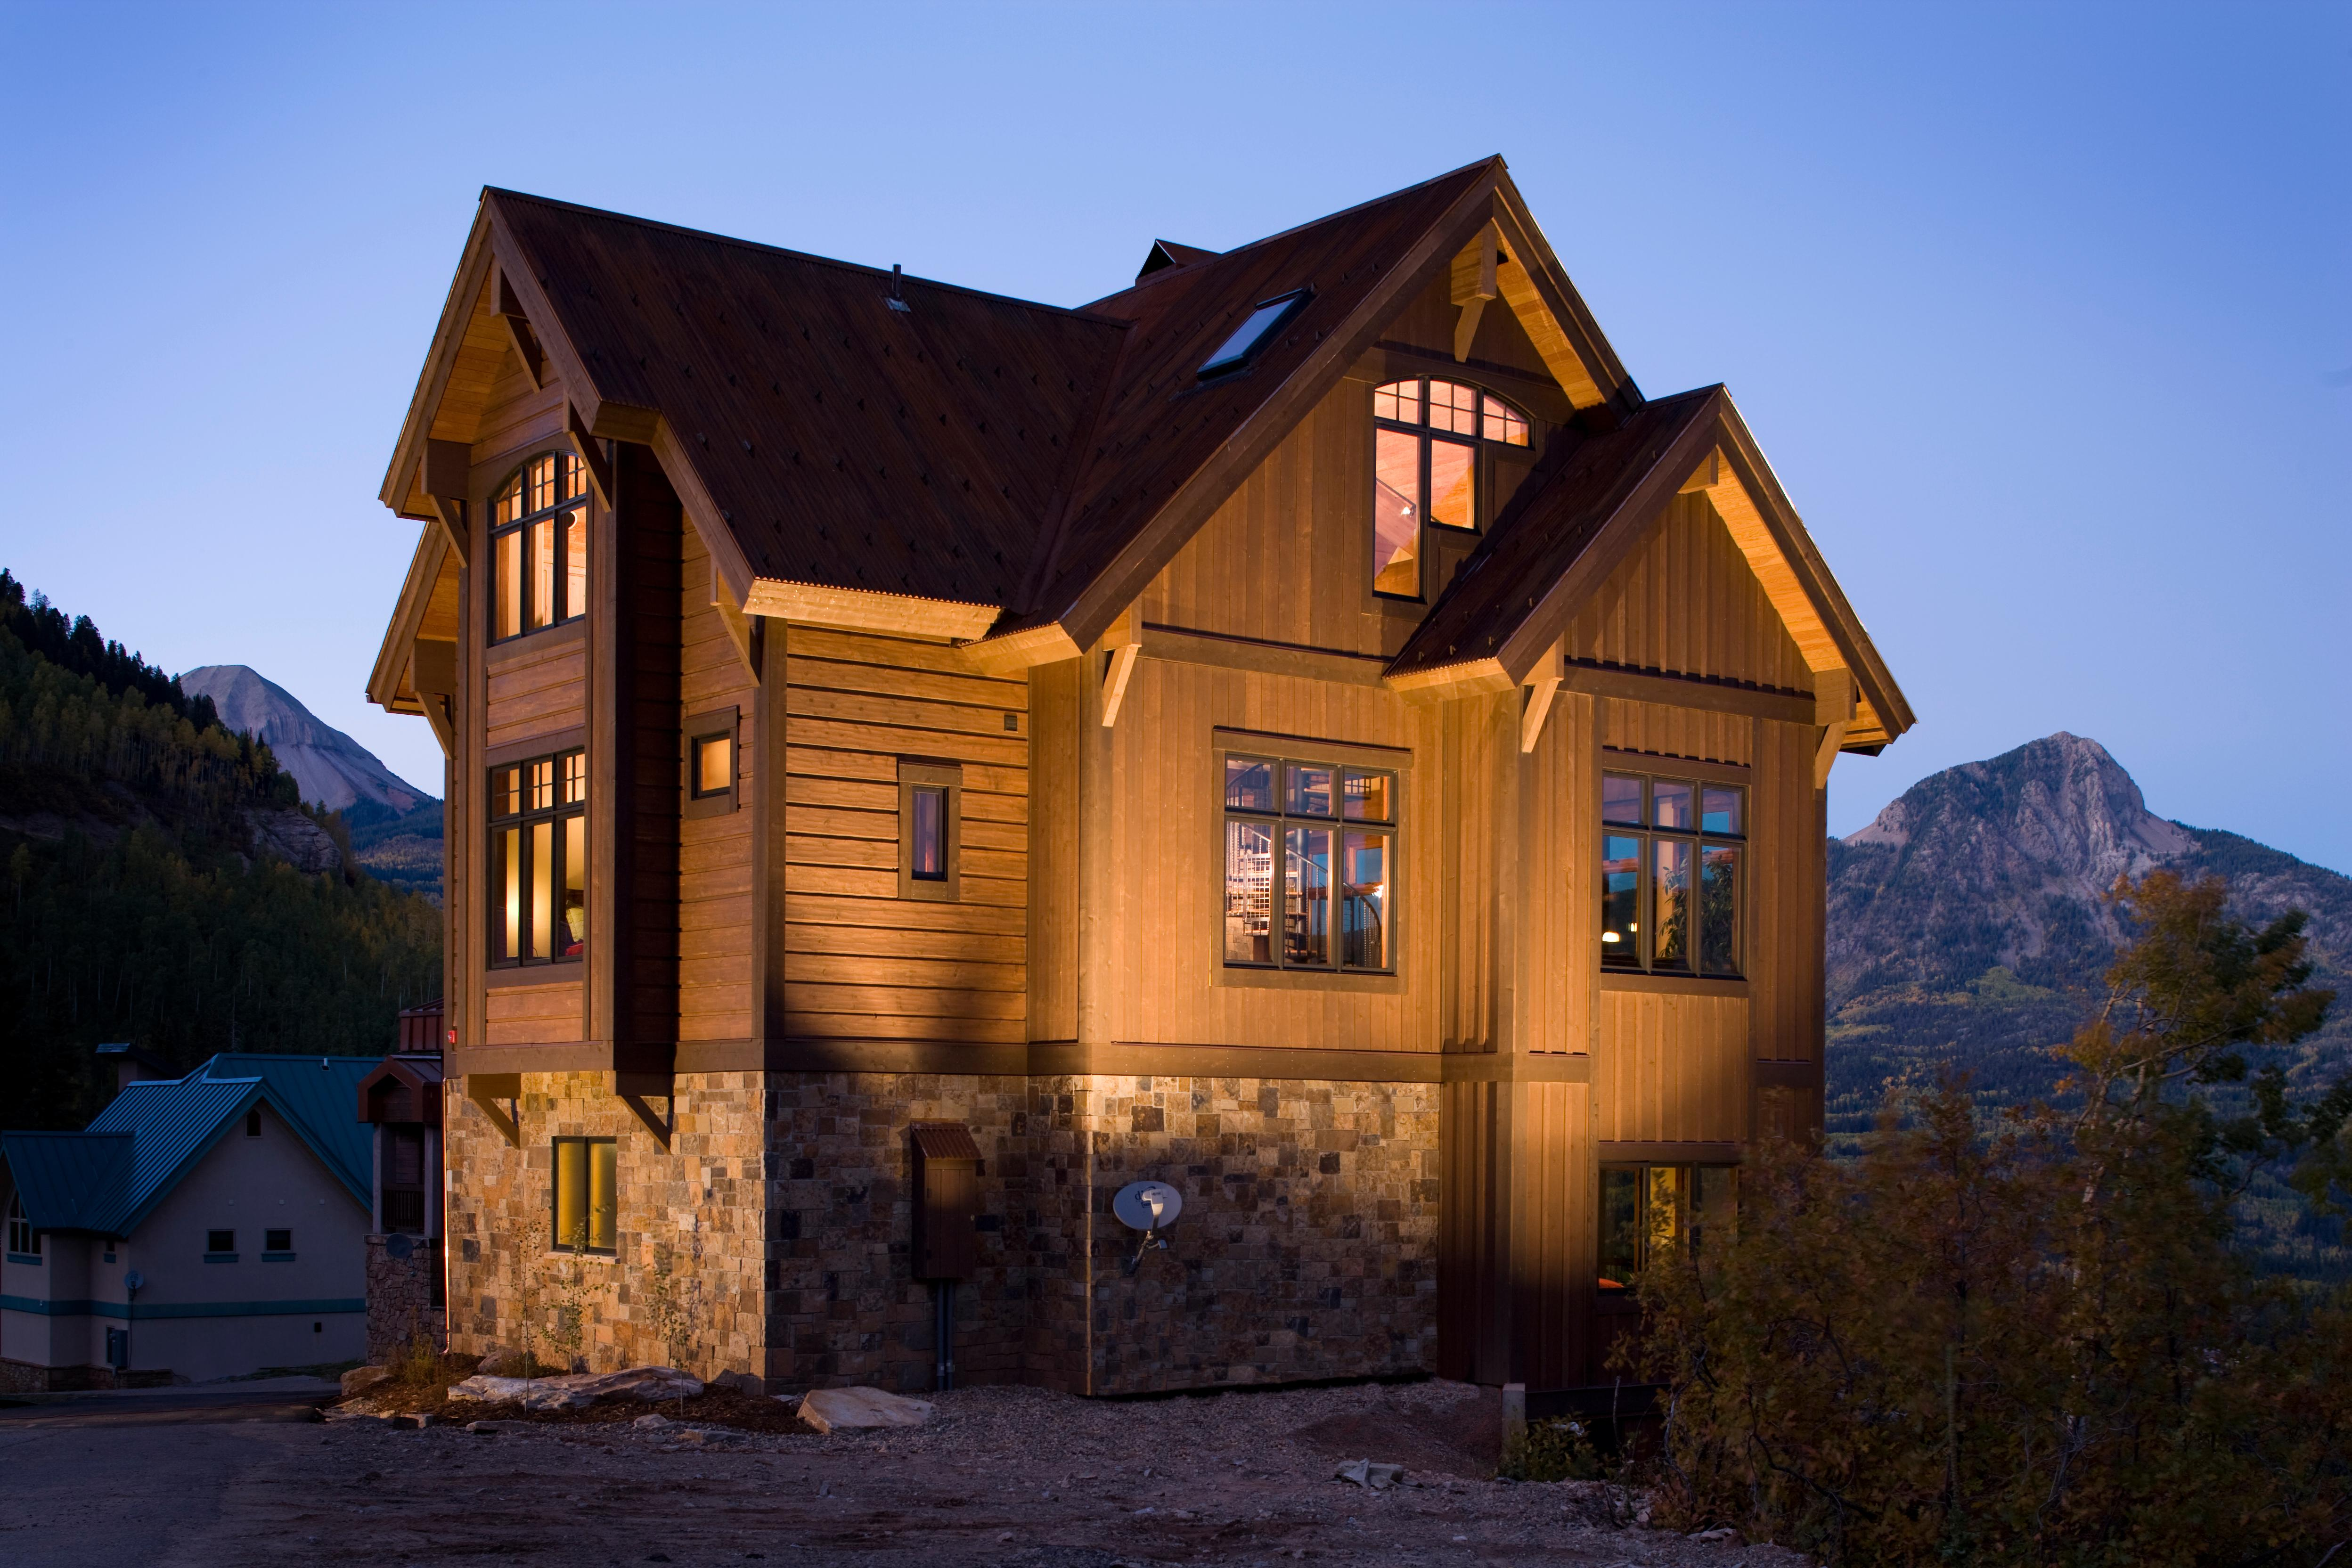 Durango, Colorado vacation rental home with amazing mountain views located at Purgatory Resort